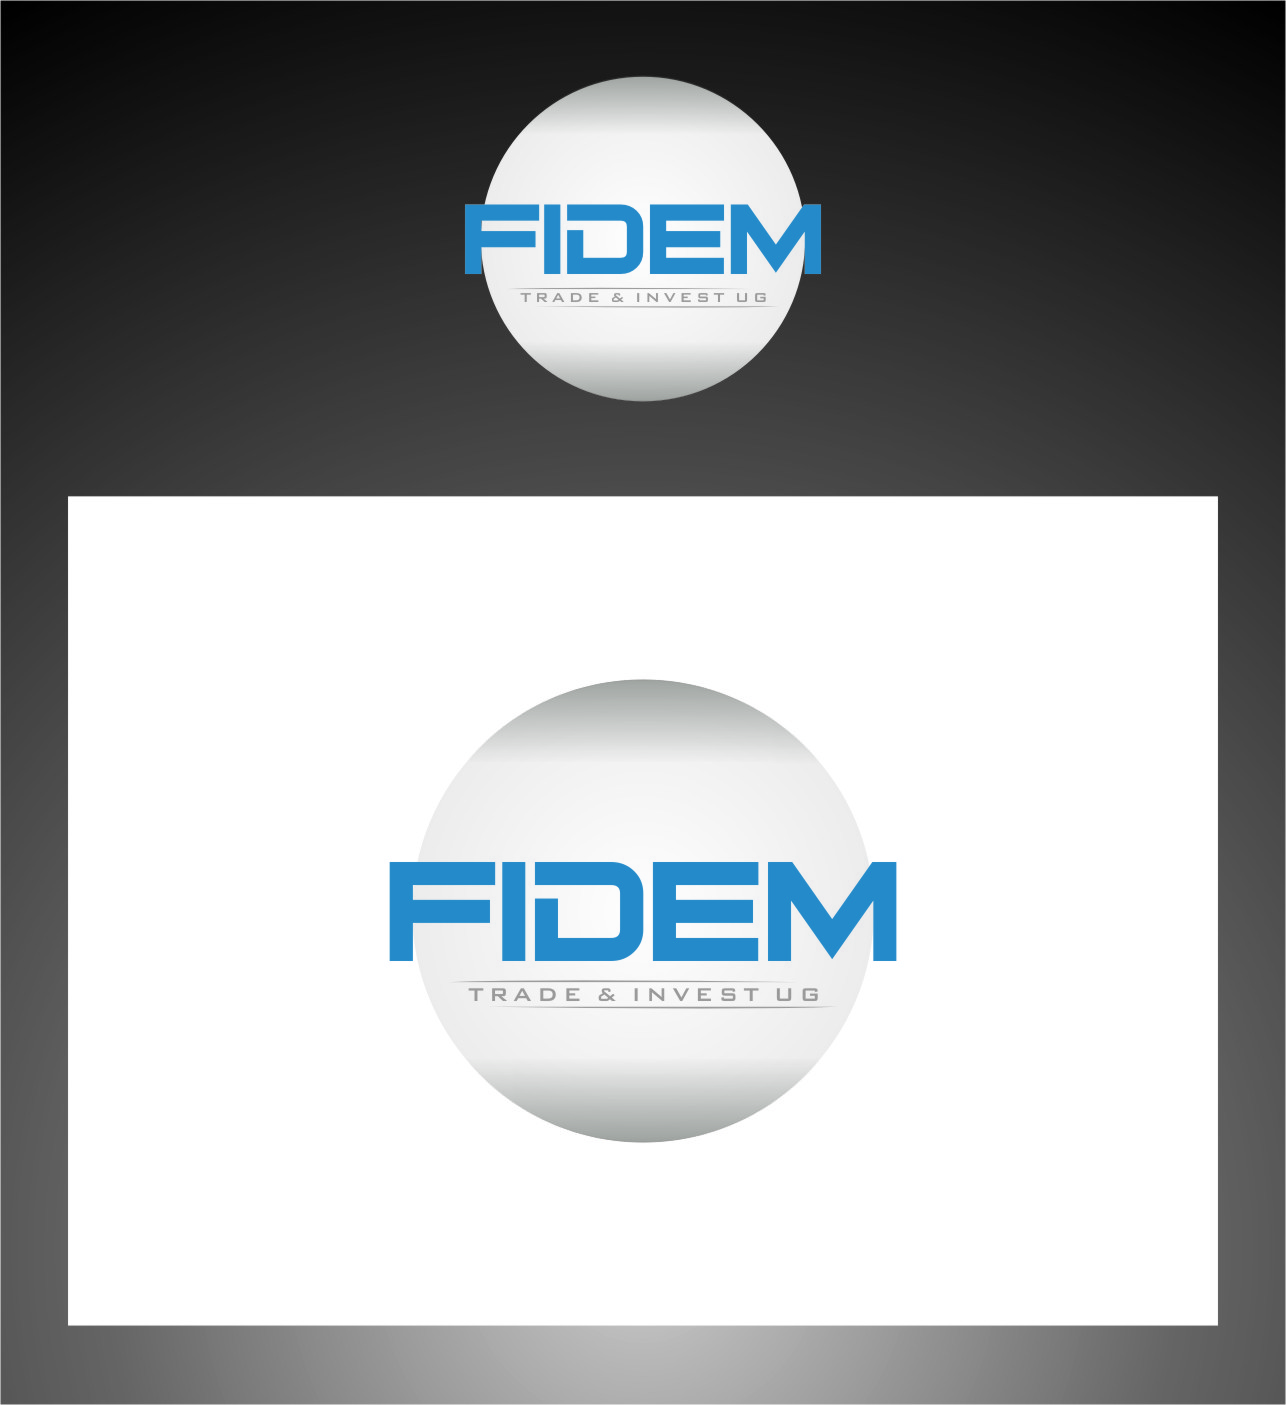 Logo Design by Ngepet_art - Entry No. 358 in the Logo Design Contest Professional Logo Design for FIDEM Trade & Invest UG.